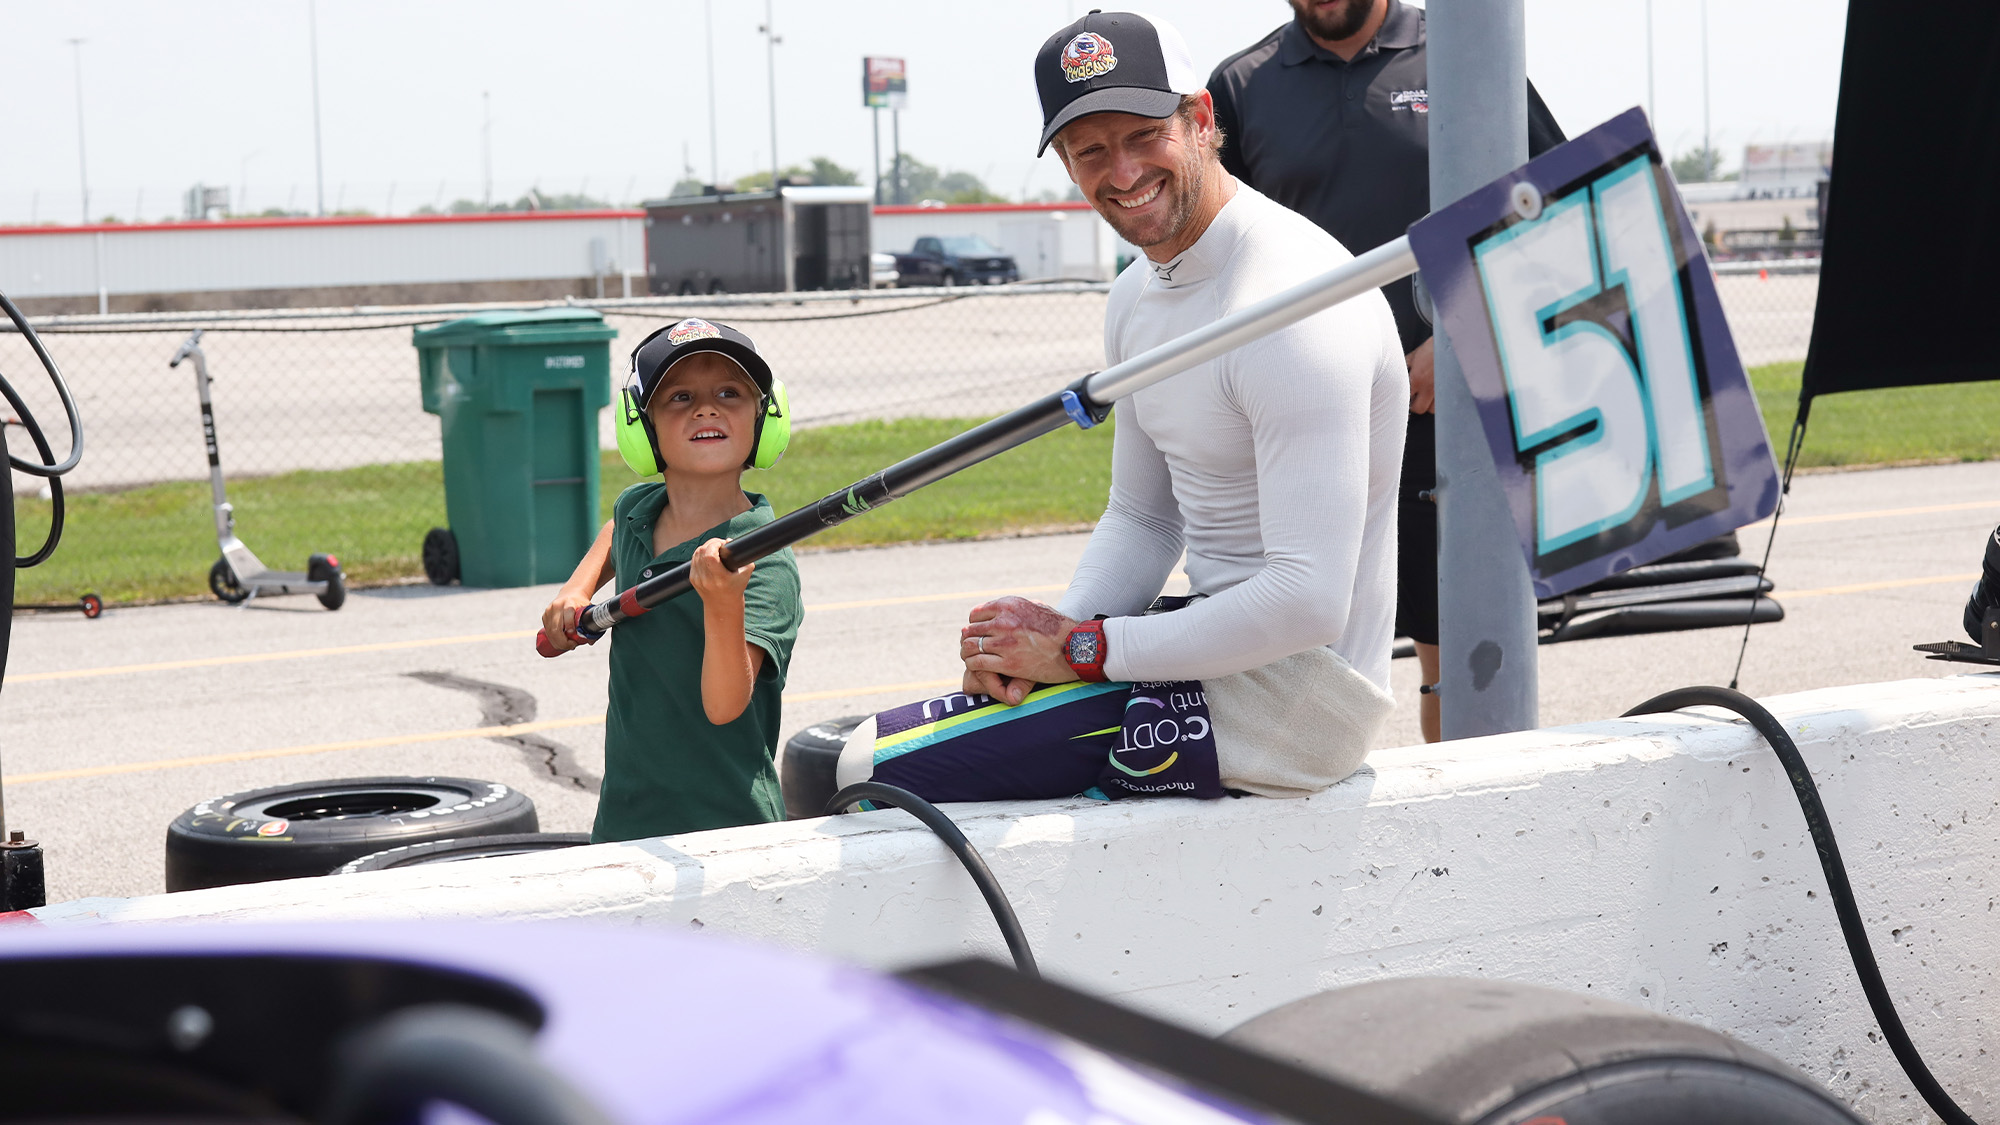 Romain Grosjean with his son at the 2021 Gateway oval test